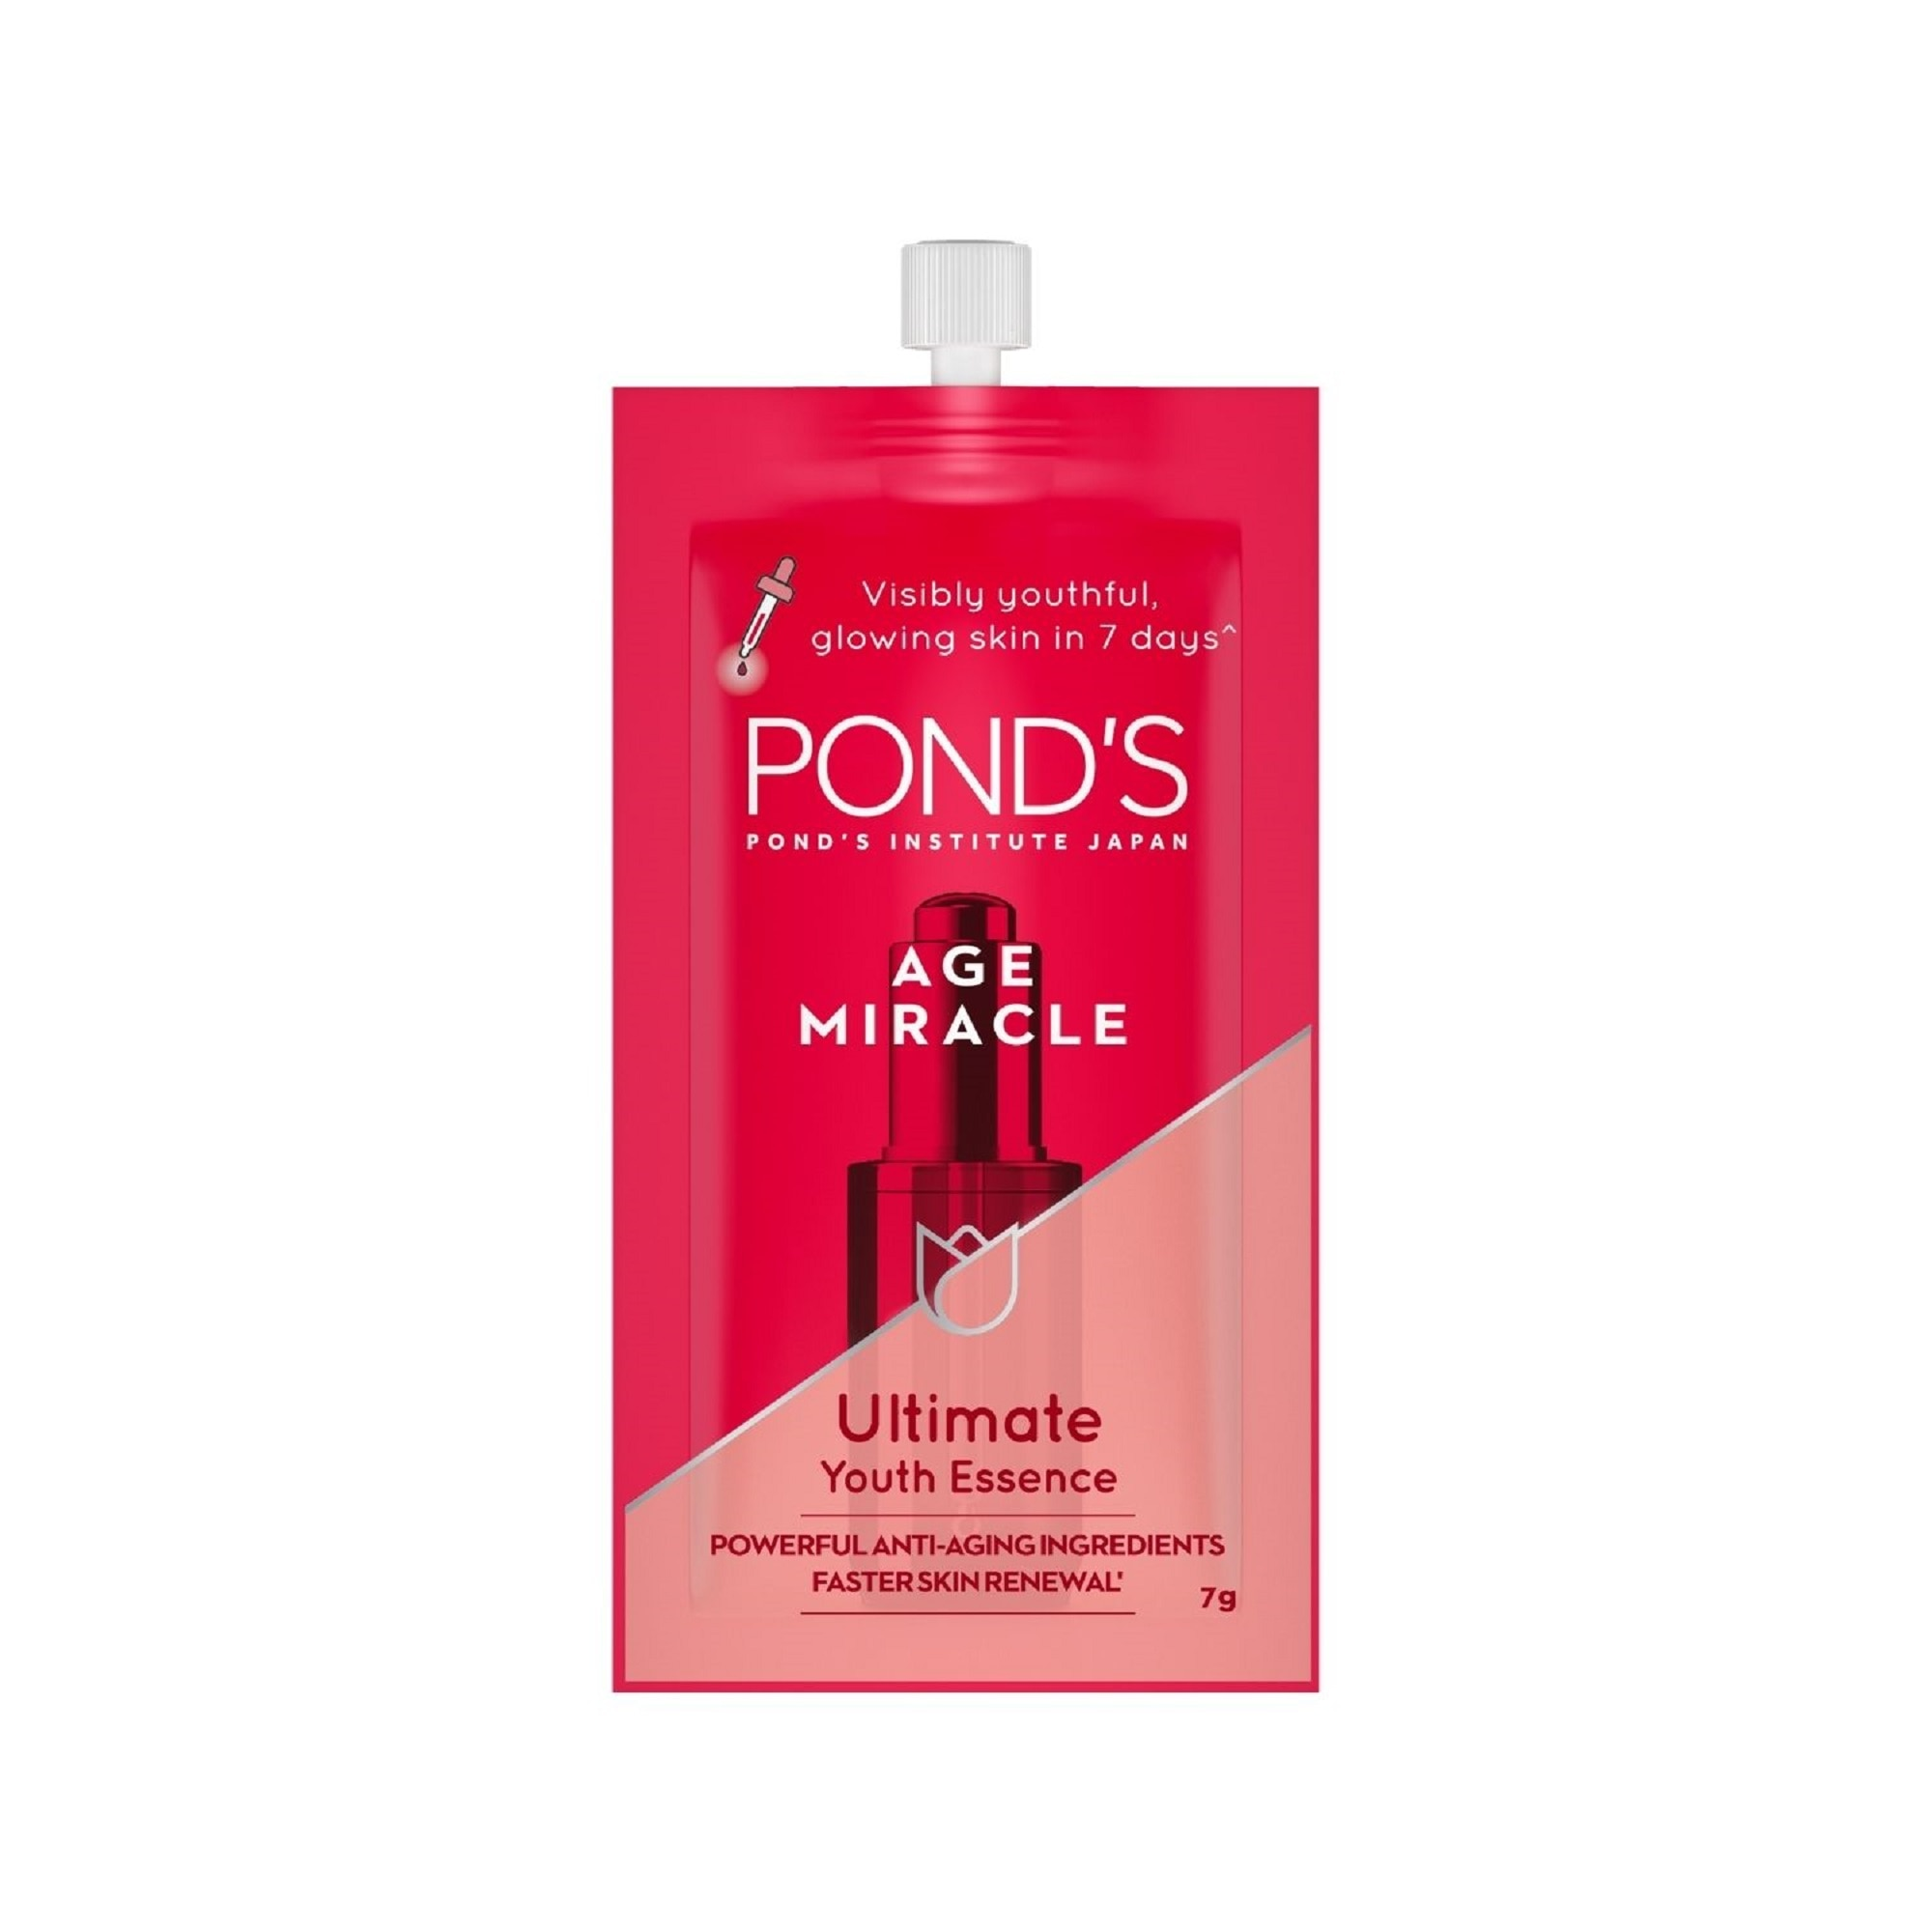 PONDSPonds Age Miracle Ultimate Youth Essence 7g,-Facial Treatment